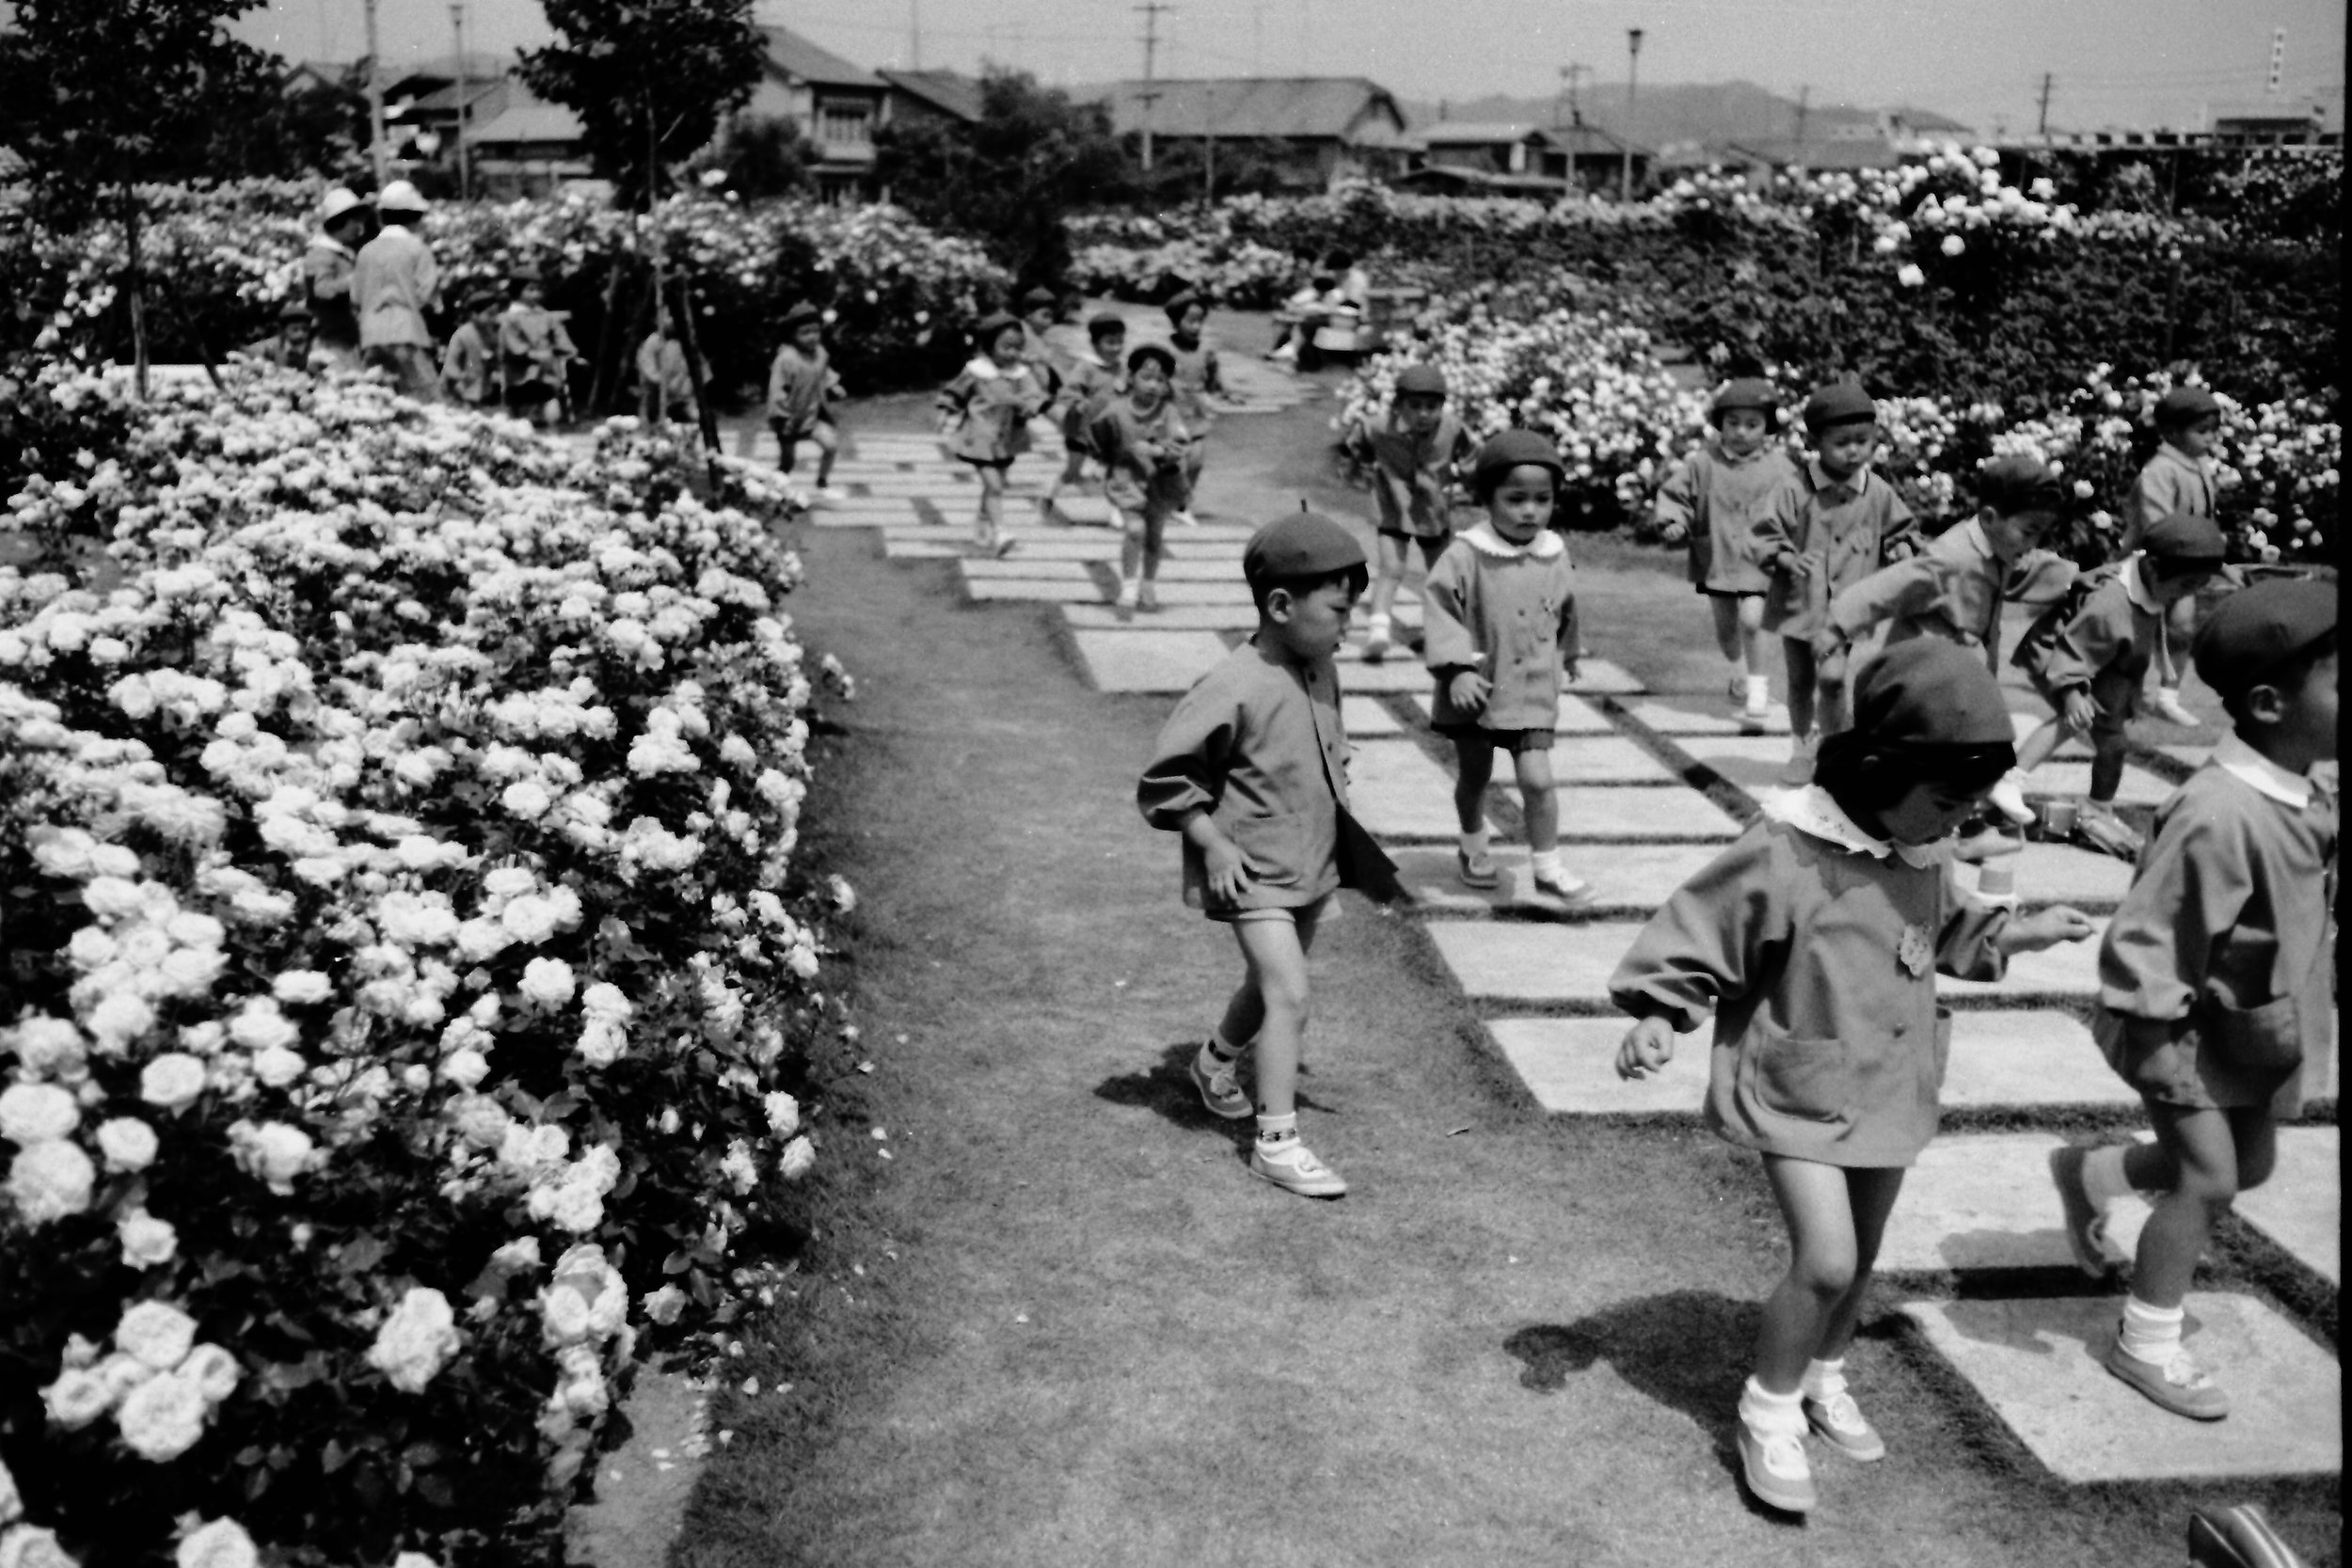 The first rose festival held on May 17, 1968